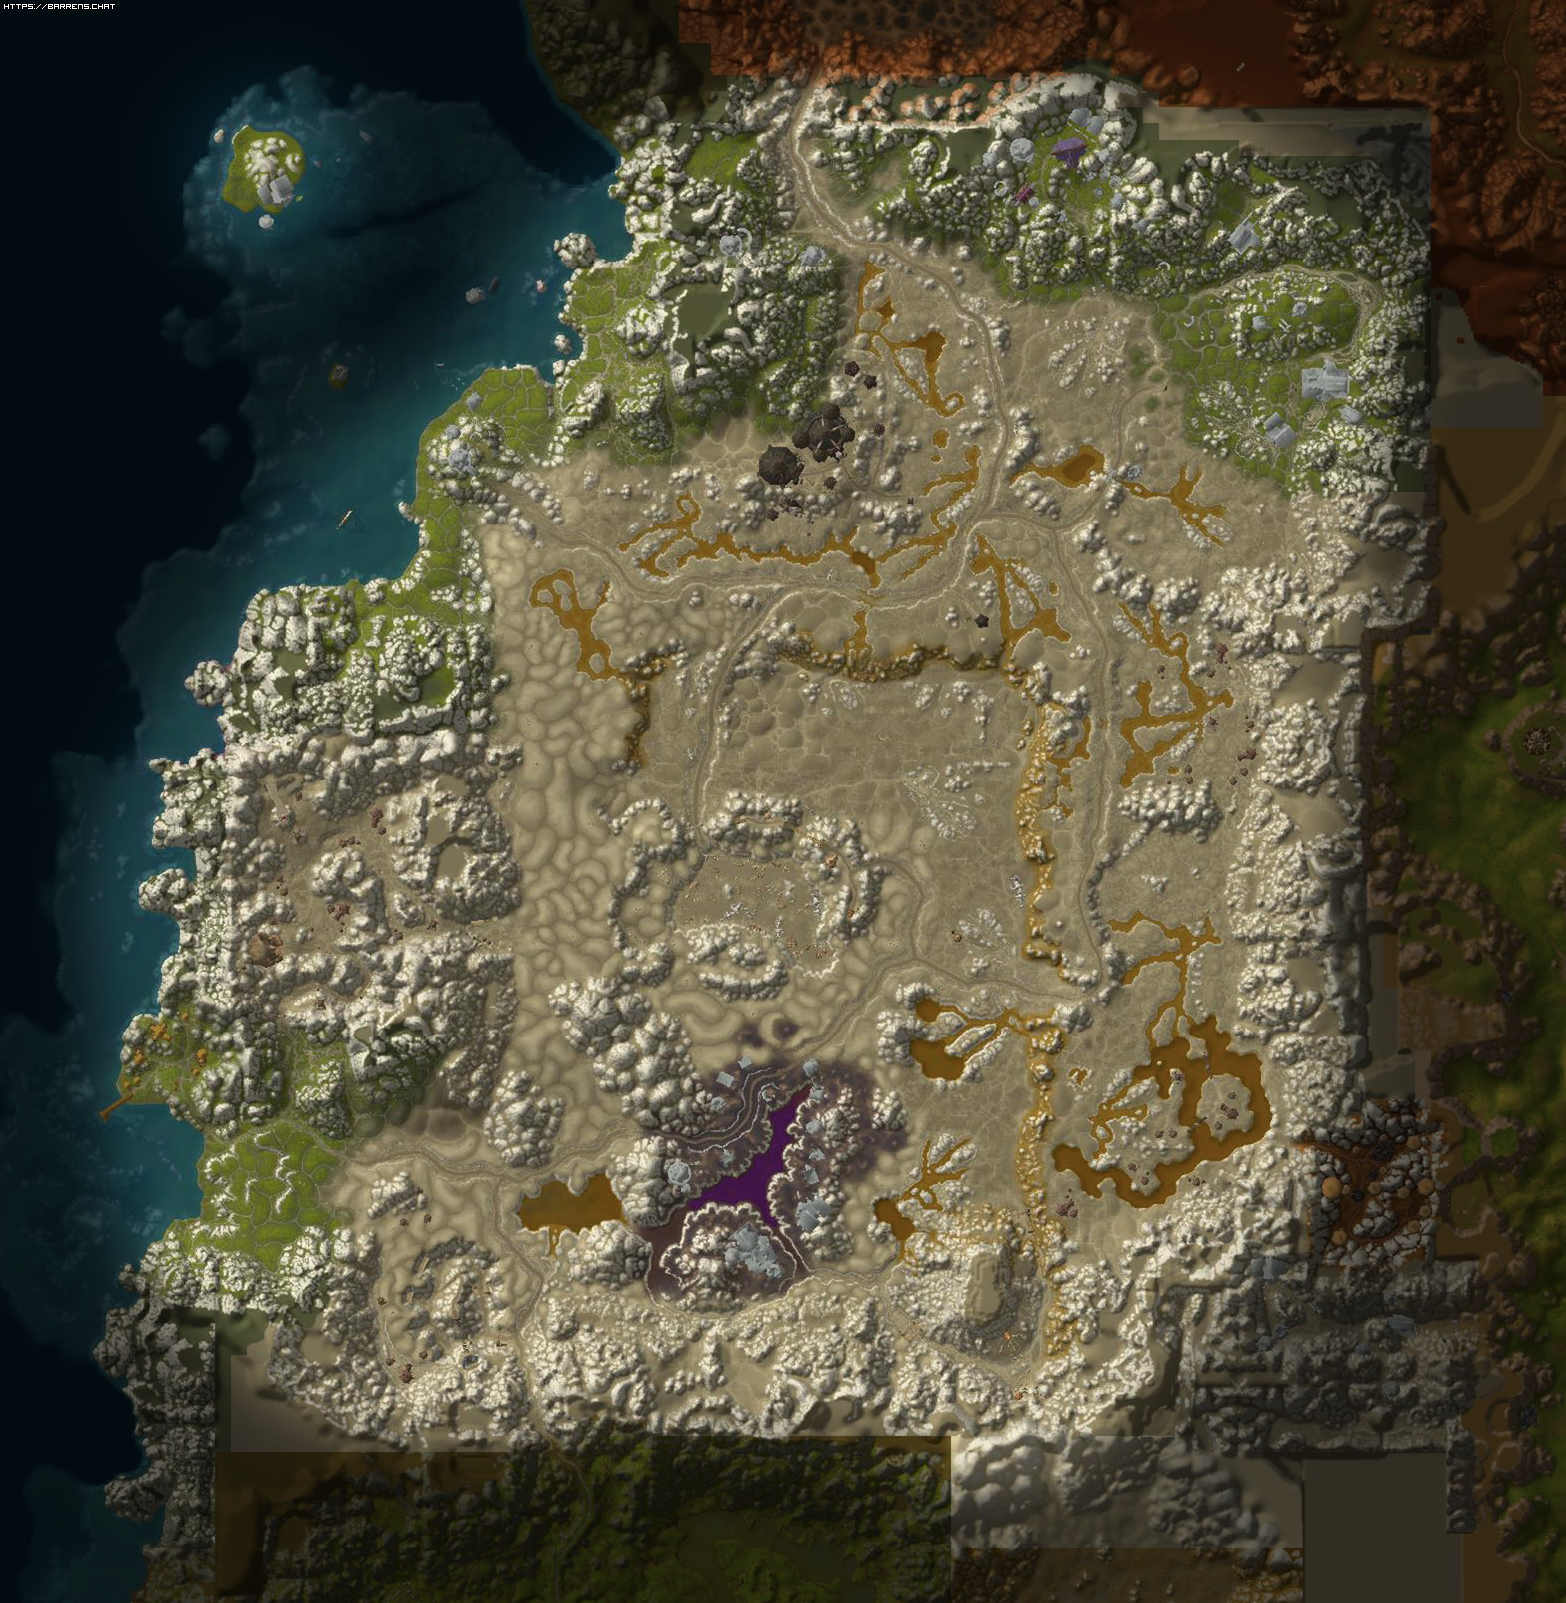 wow_clic_high_resolution_world_terrain_map_desolace Dun Morogh Map on khaz modan map, mulgore map, azuremyst isle map, undercity map, elwynn forest map, darnassus map, duskwood map, ironforge map, bloodmyst isle map, darkshore map, tanaris map, kharanos wow map, grizzly hills map, stormwind map, desolace map, darkmoon faire map, zangarmarsh map, silverpine forest map, tirisfal glades map, loch modan map,